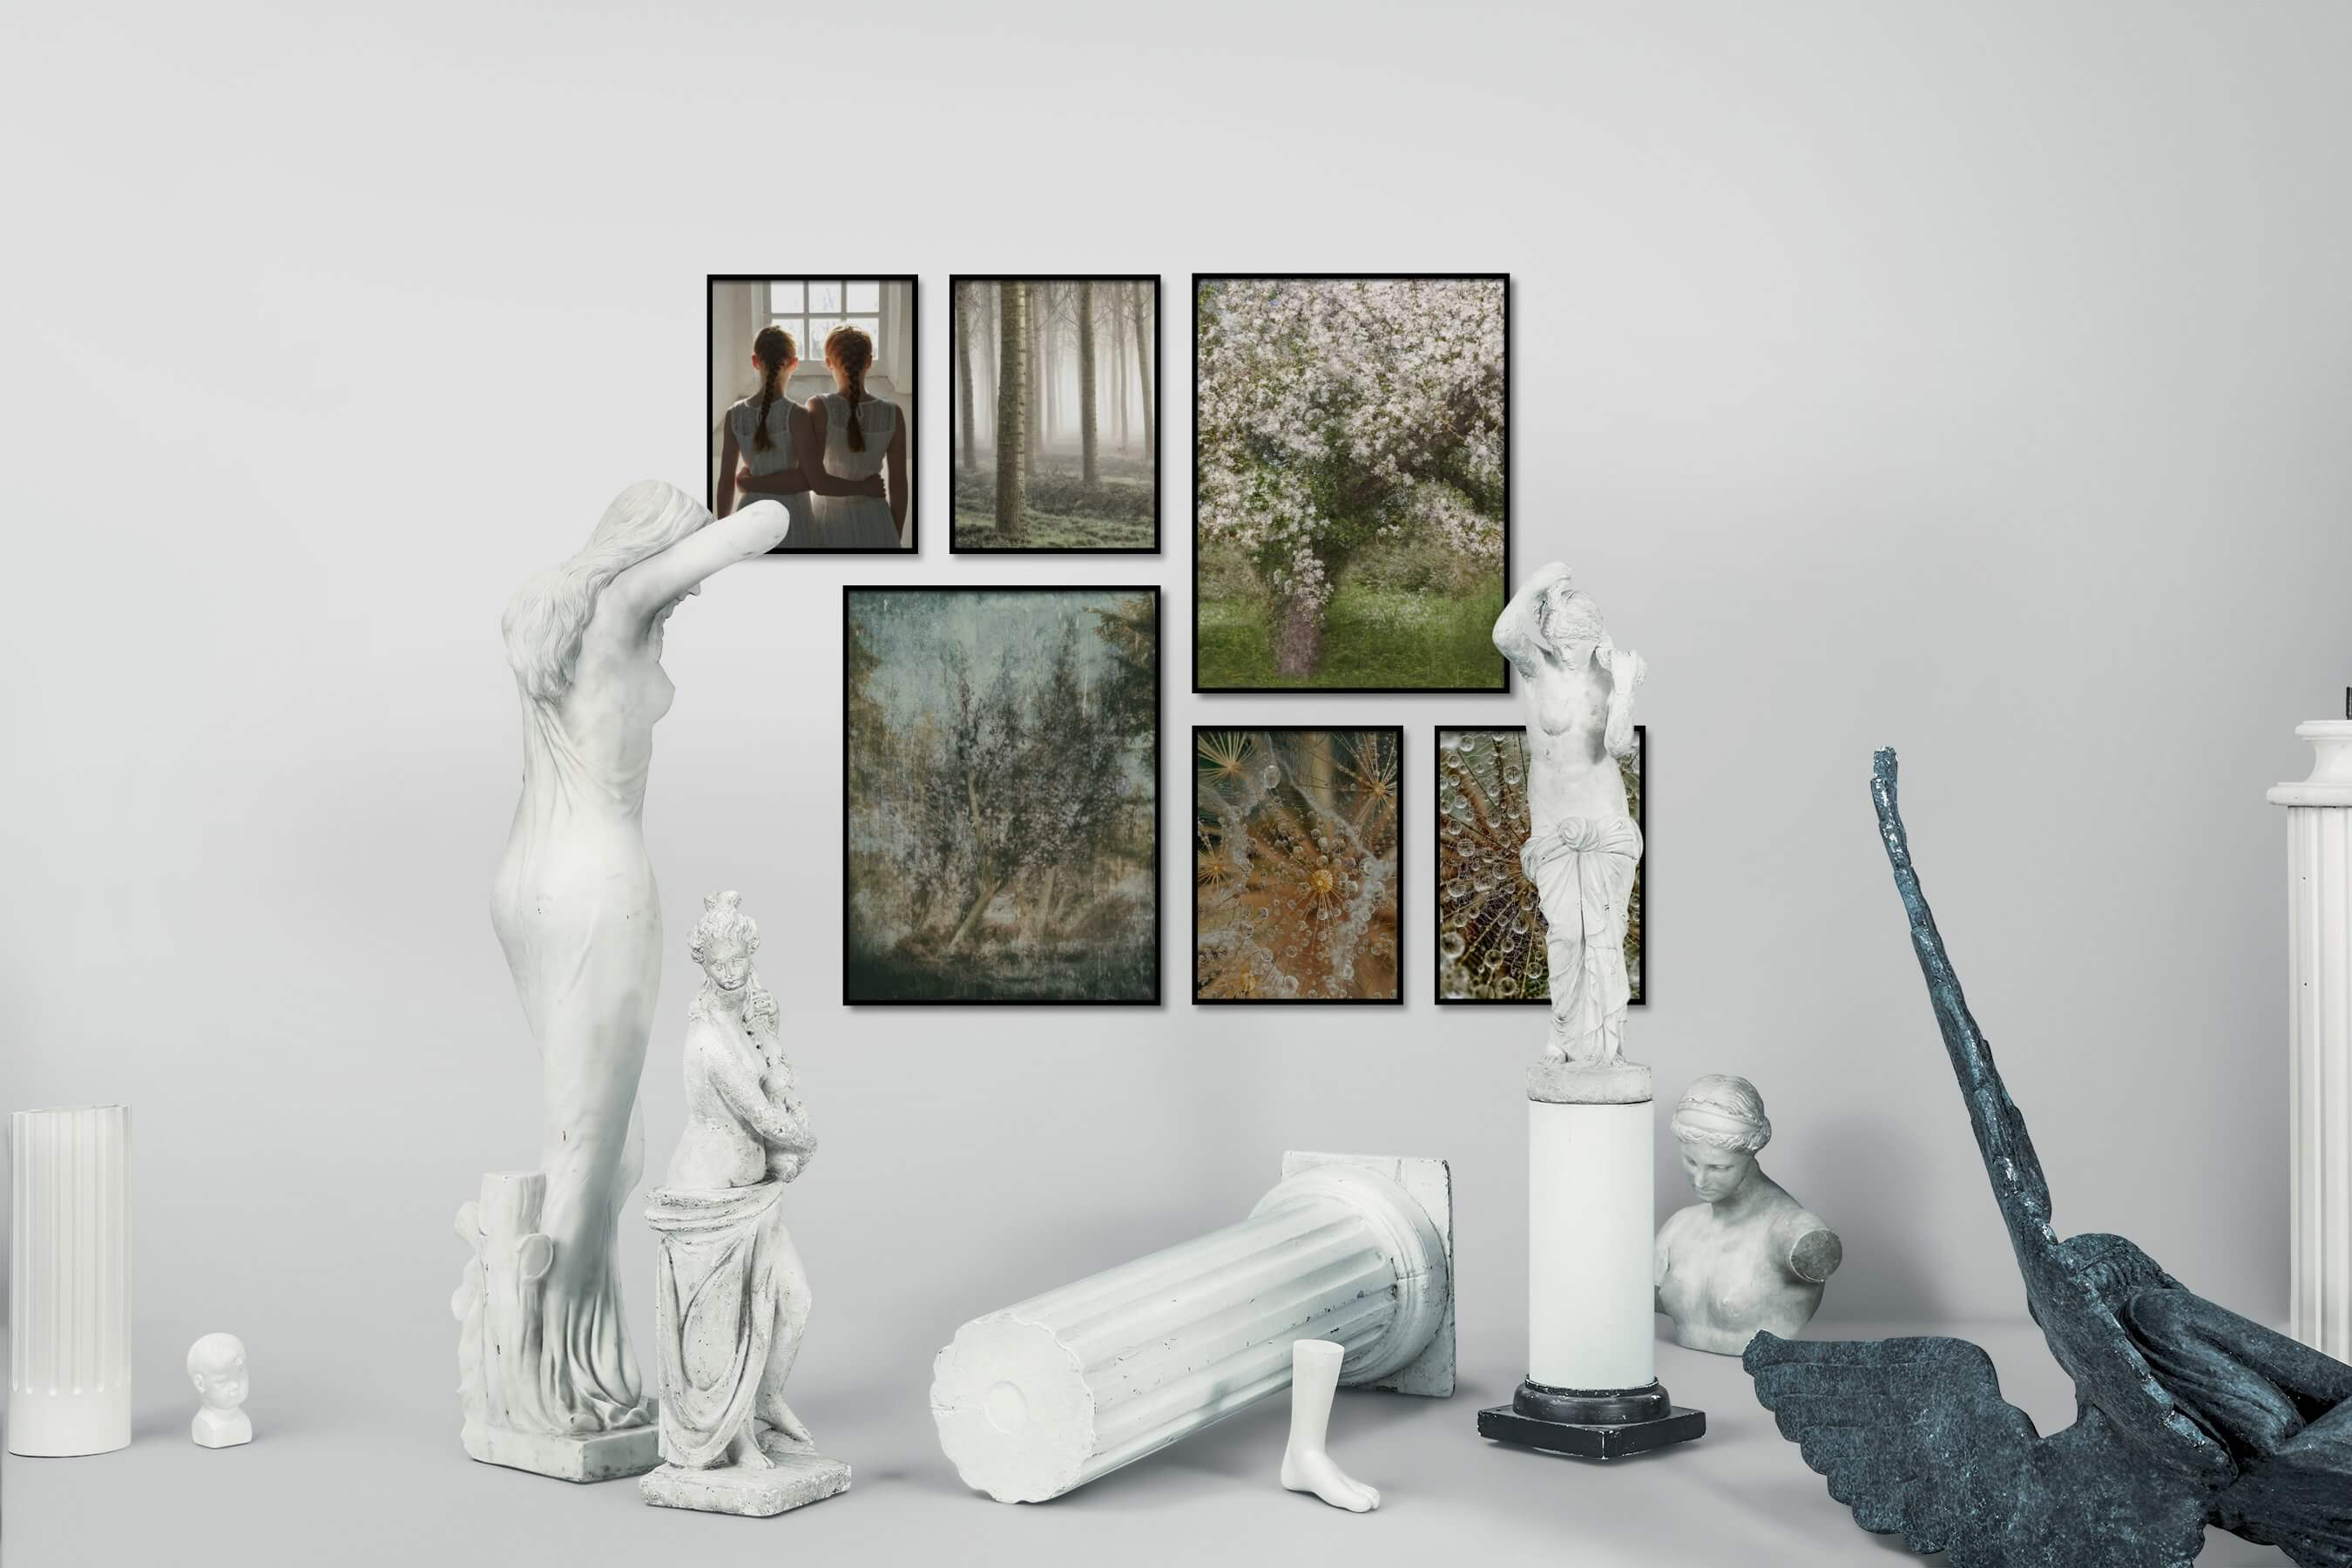 Gallery wall idea with six framed pictures arranged on a wall depicting Artsy, Mindfulness, Nature, Vintage, For the Maximalist, For the Moderate, and Flowers & Plants